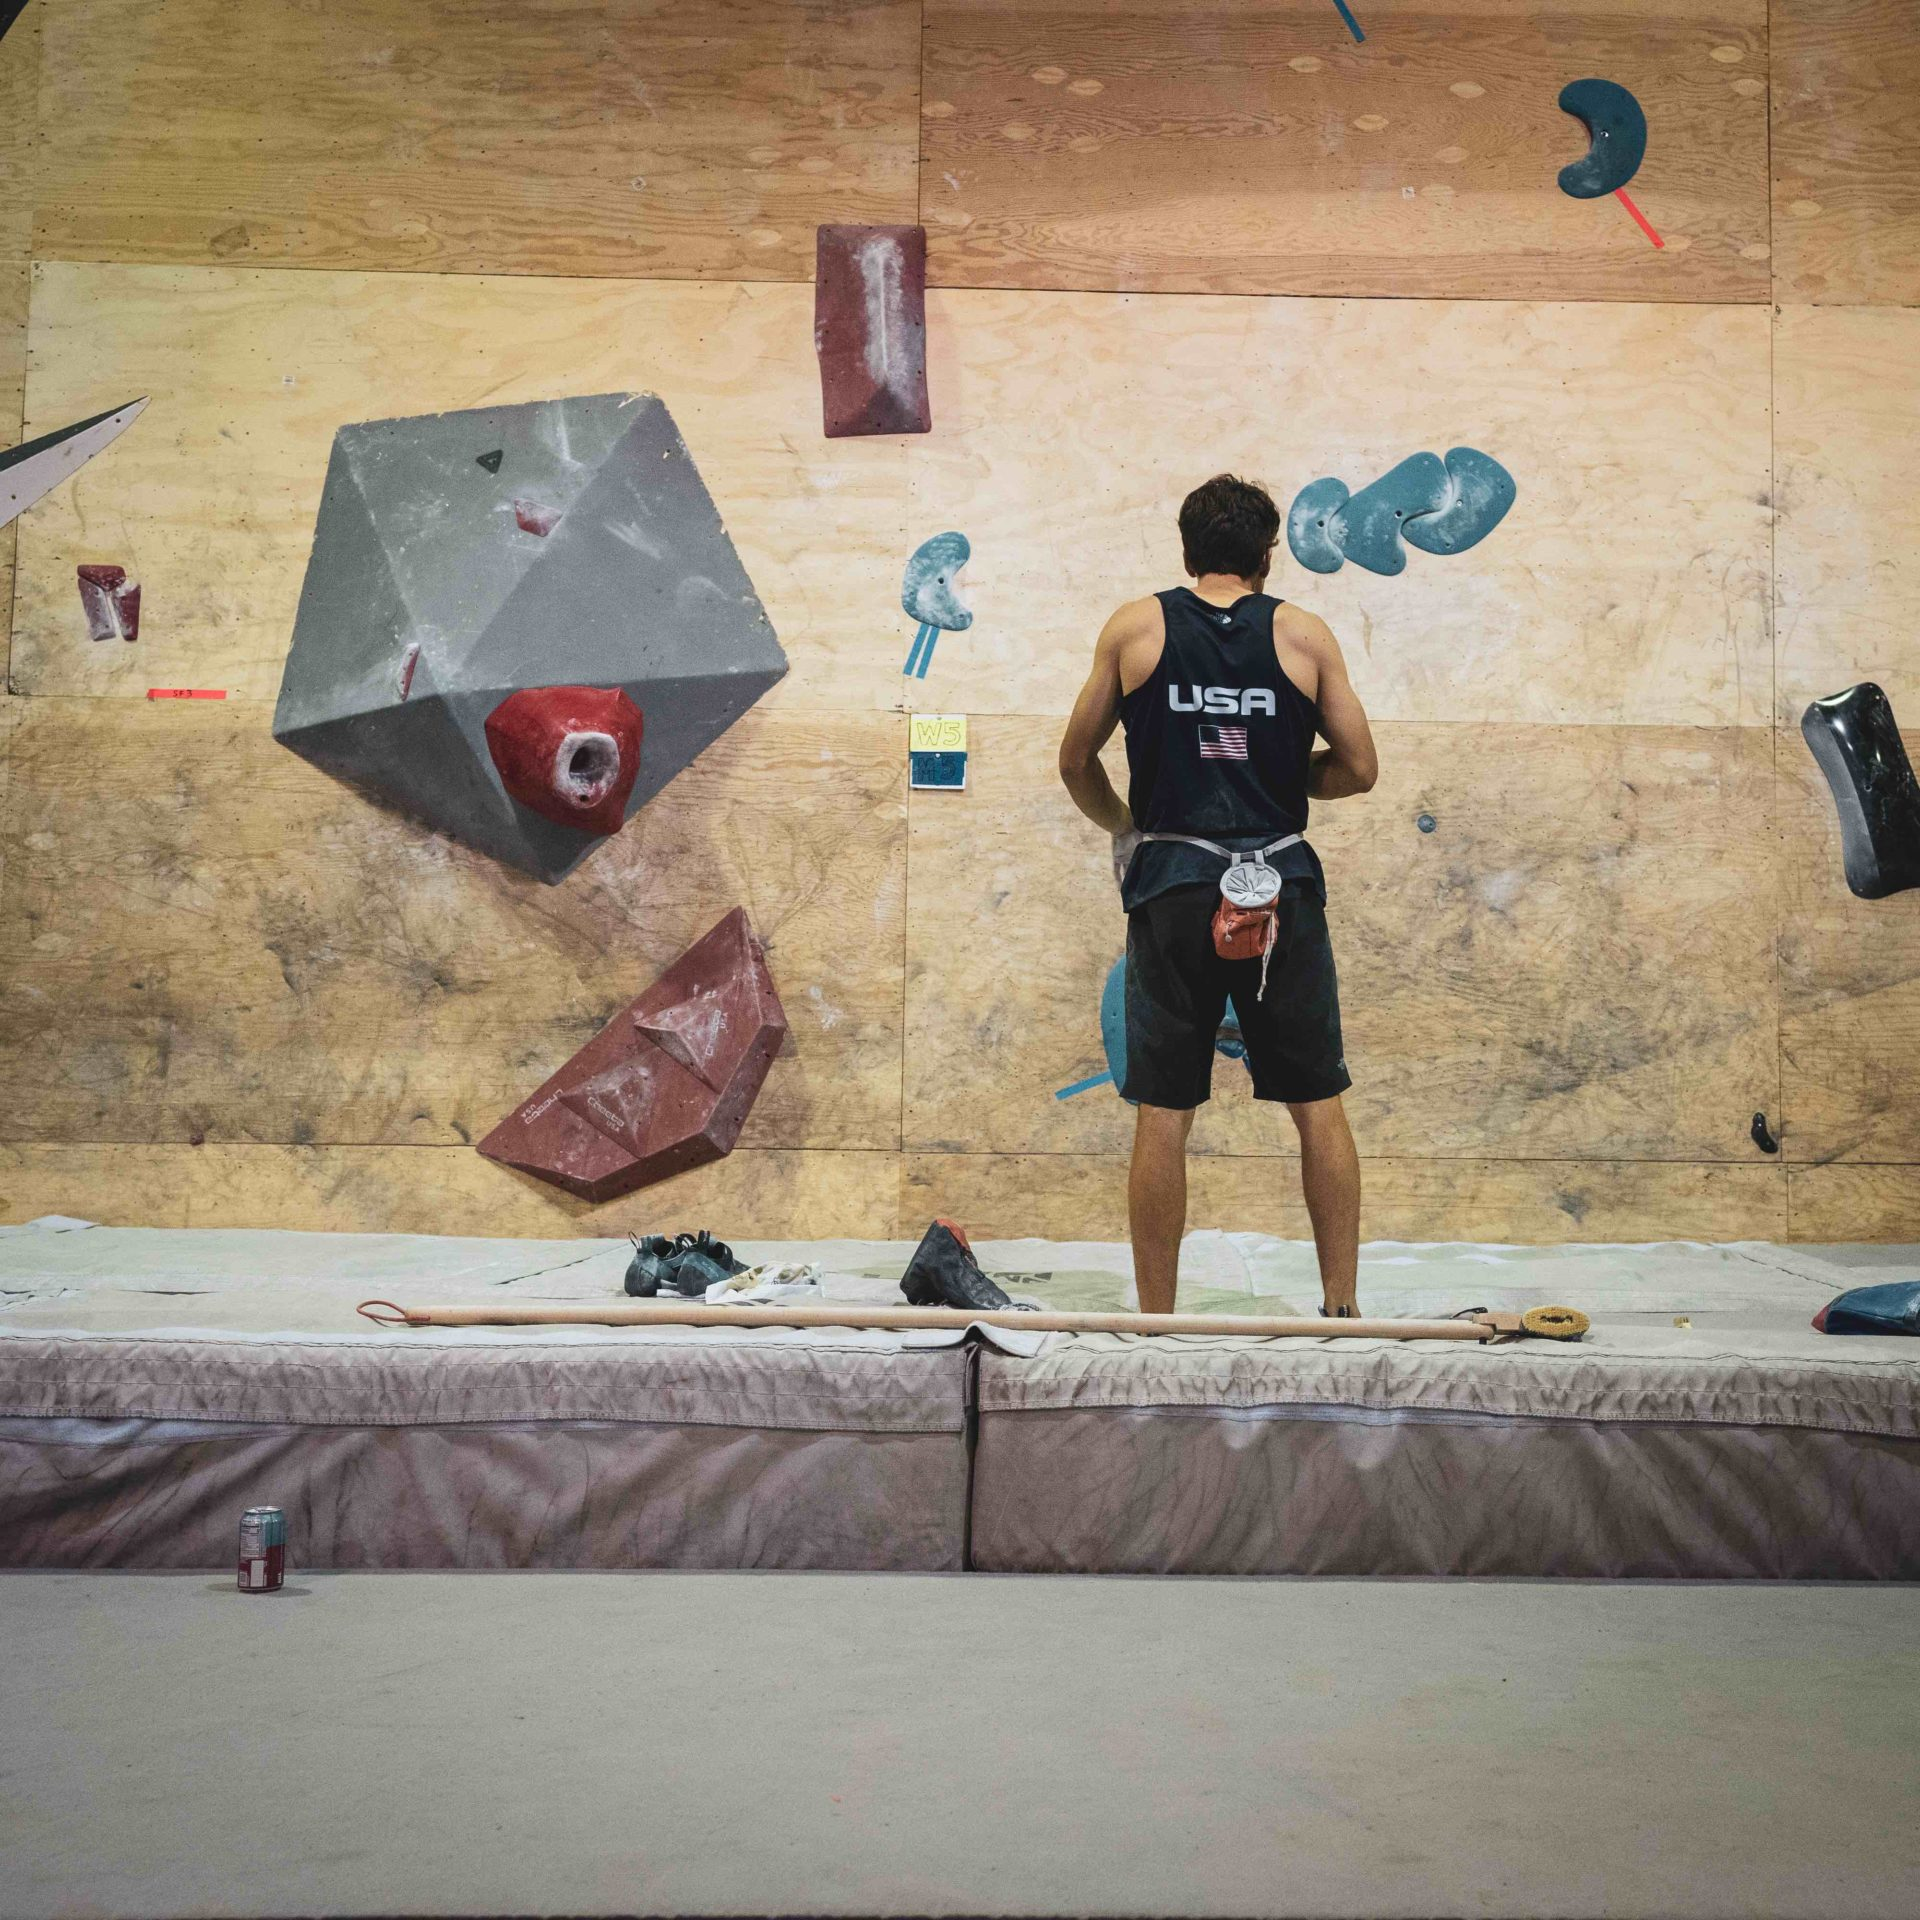 USA Climber standing in front of bouldering wall